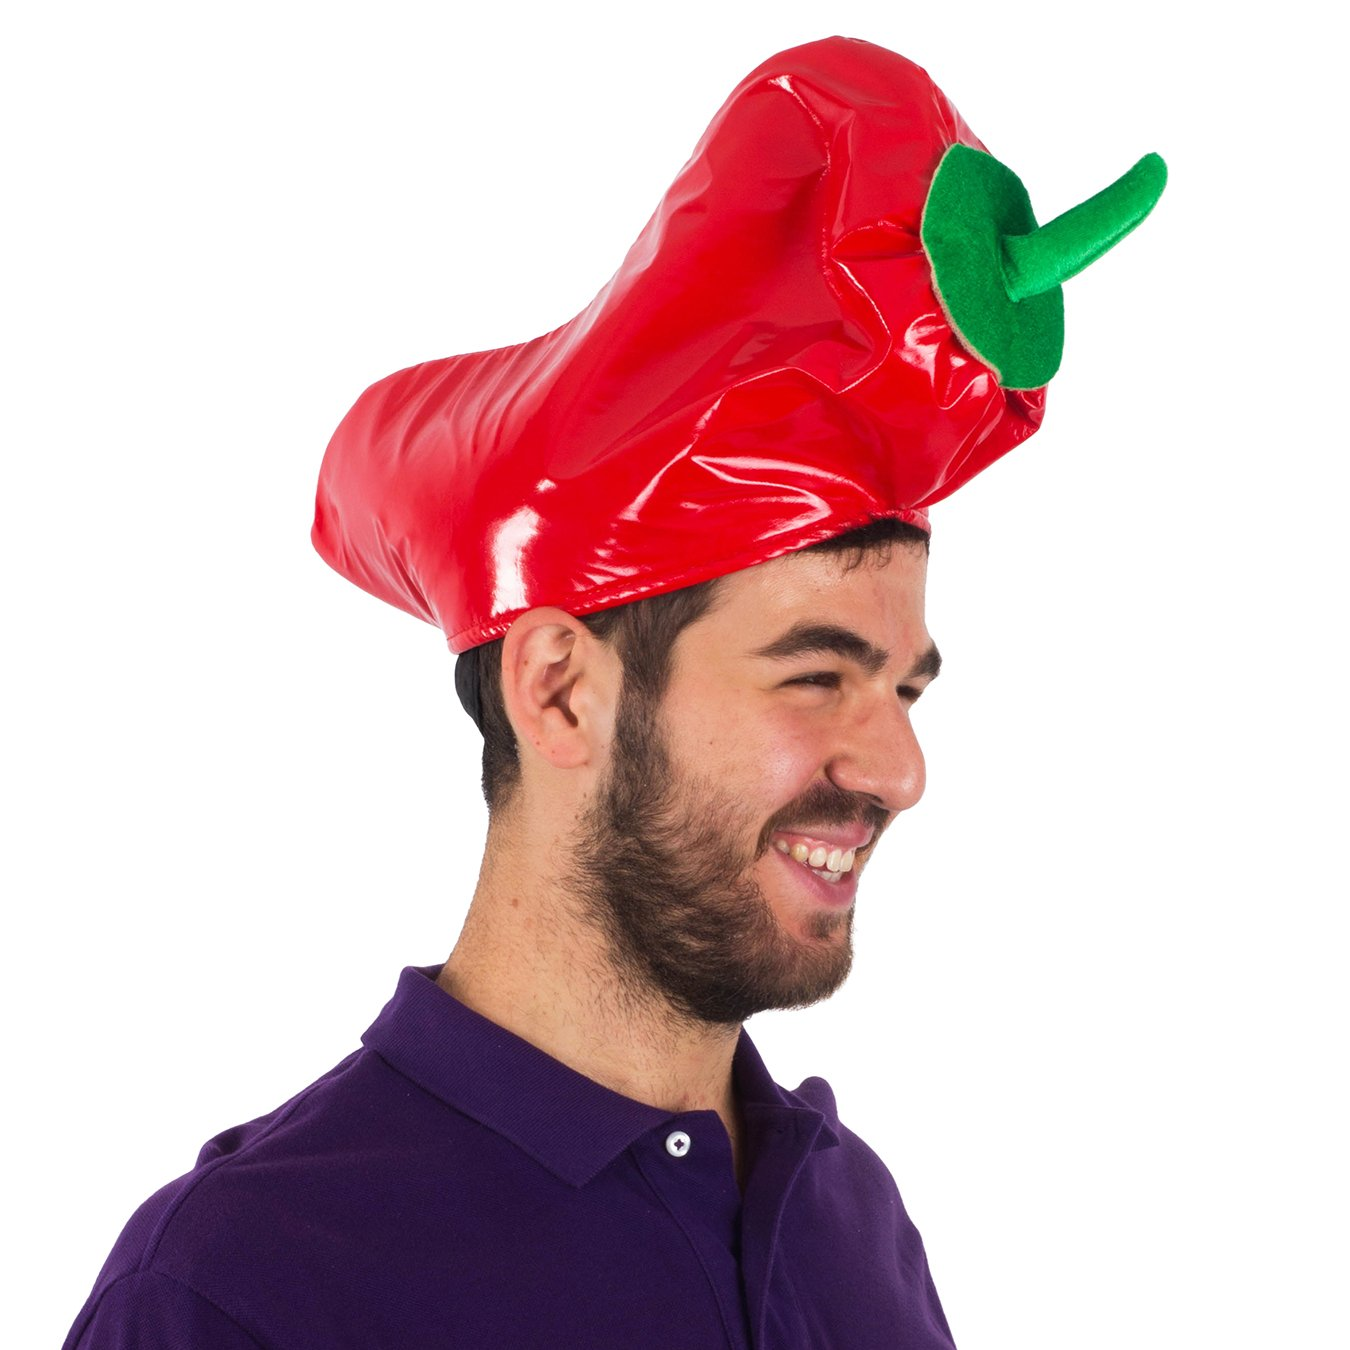 Red Pepper Hat - Adults Cinco De Mayo Party Hats - Novelty Hats by Funny Party Hats ab531